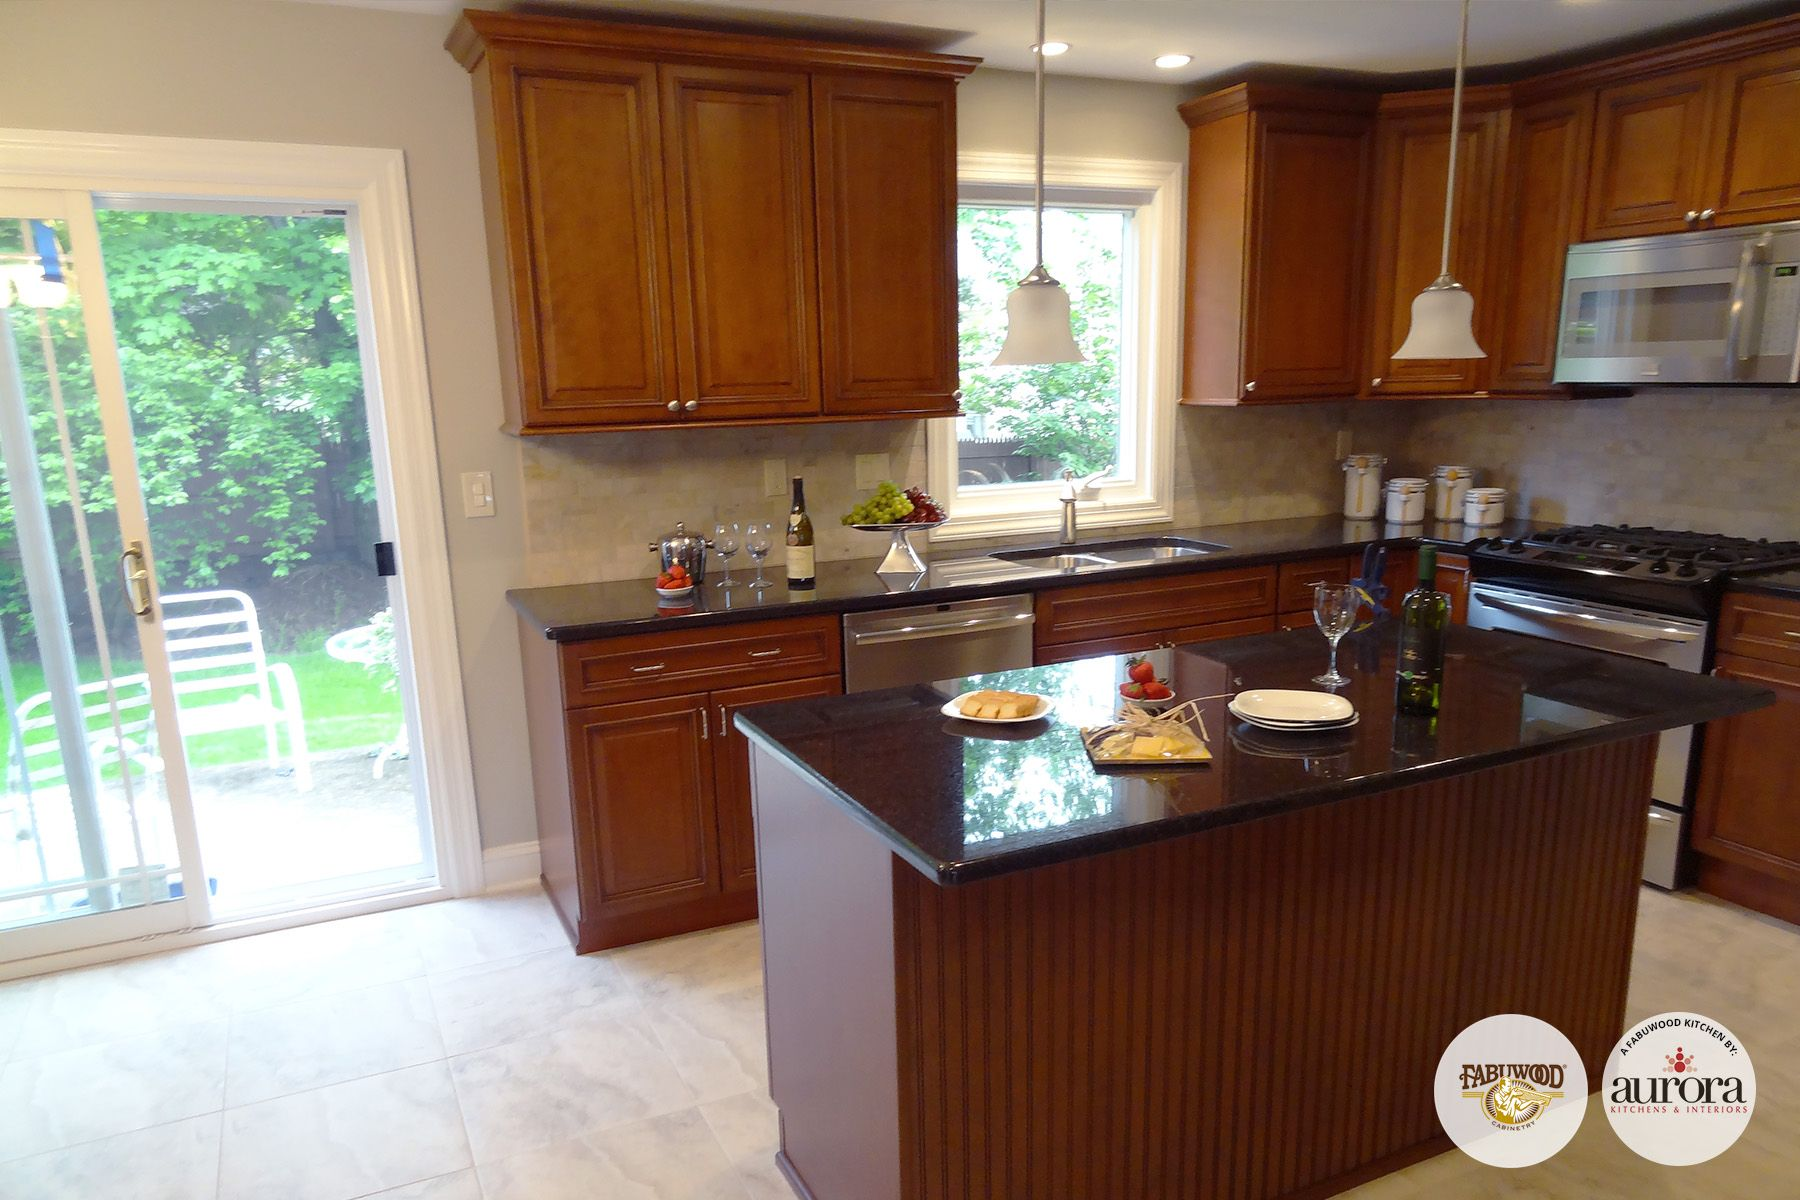 Merveilleux The Full View Of The Classic Wellington Cabinets In Cinnamon Glaze.  #Fabuwood #kitchens